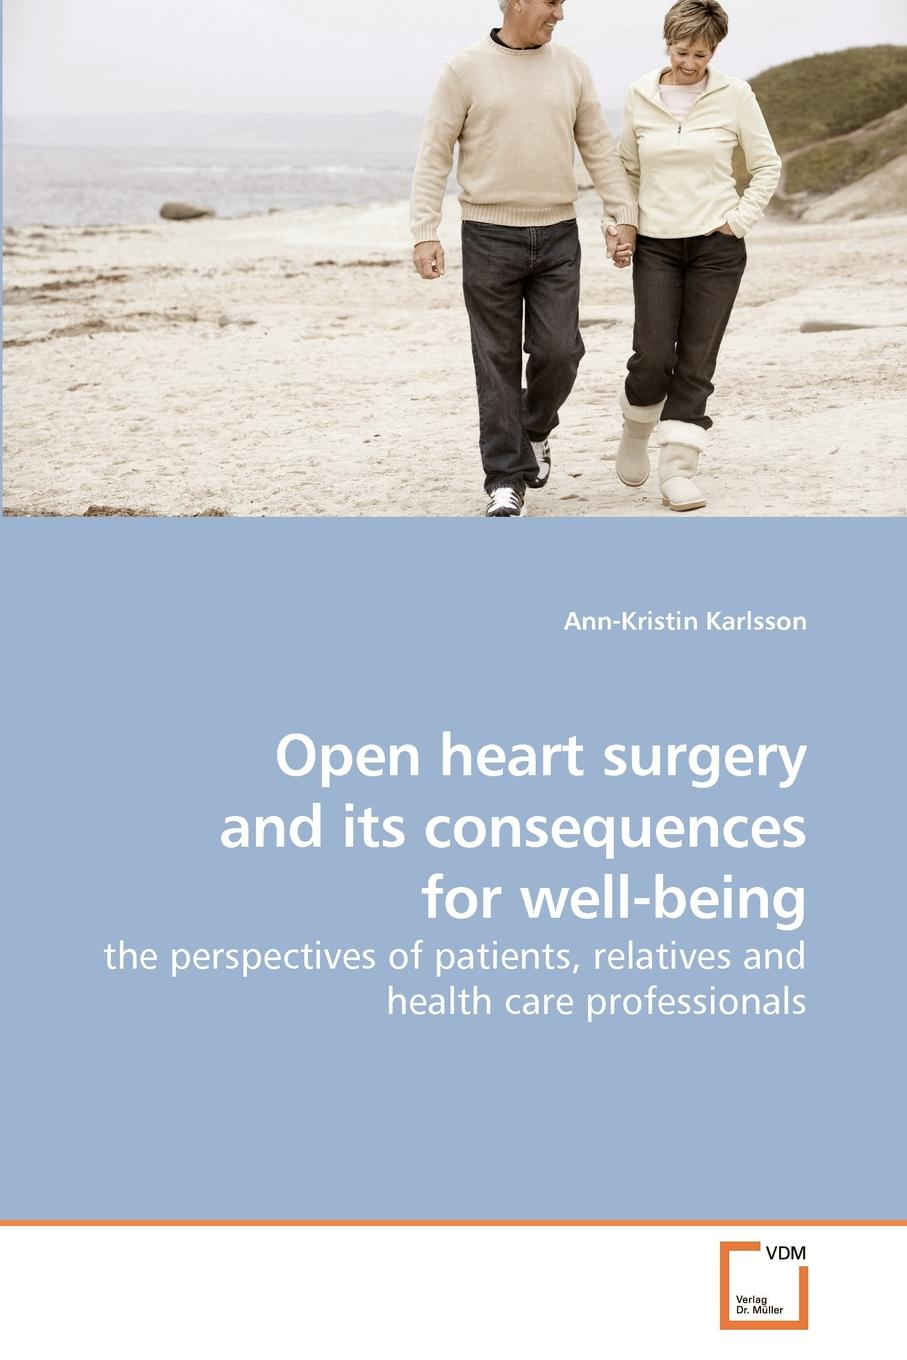 Ann-Kristin Karlsson Open heart surgery and its consequences for well-being robert bojar m manual of perioperative care in adult cardiac surgery